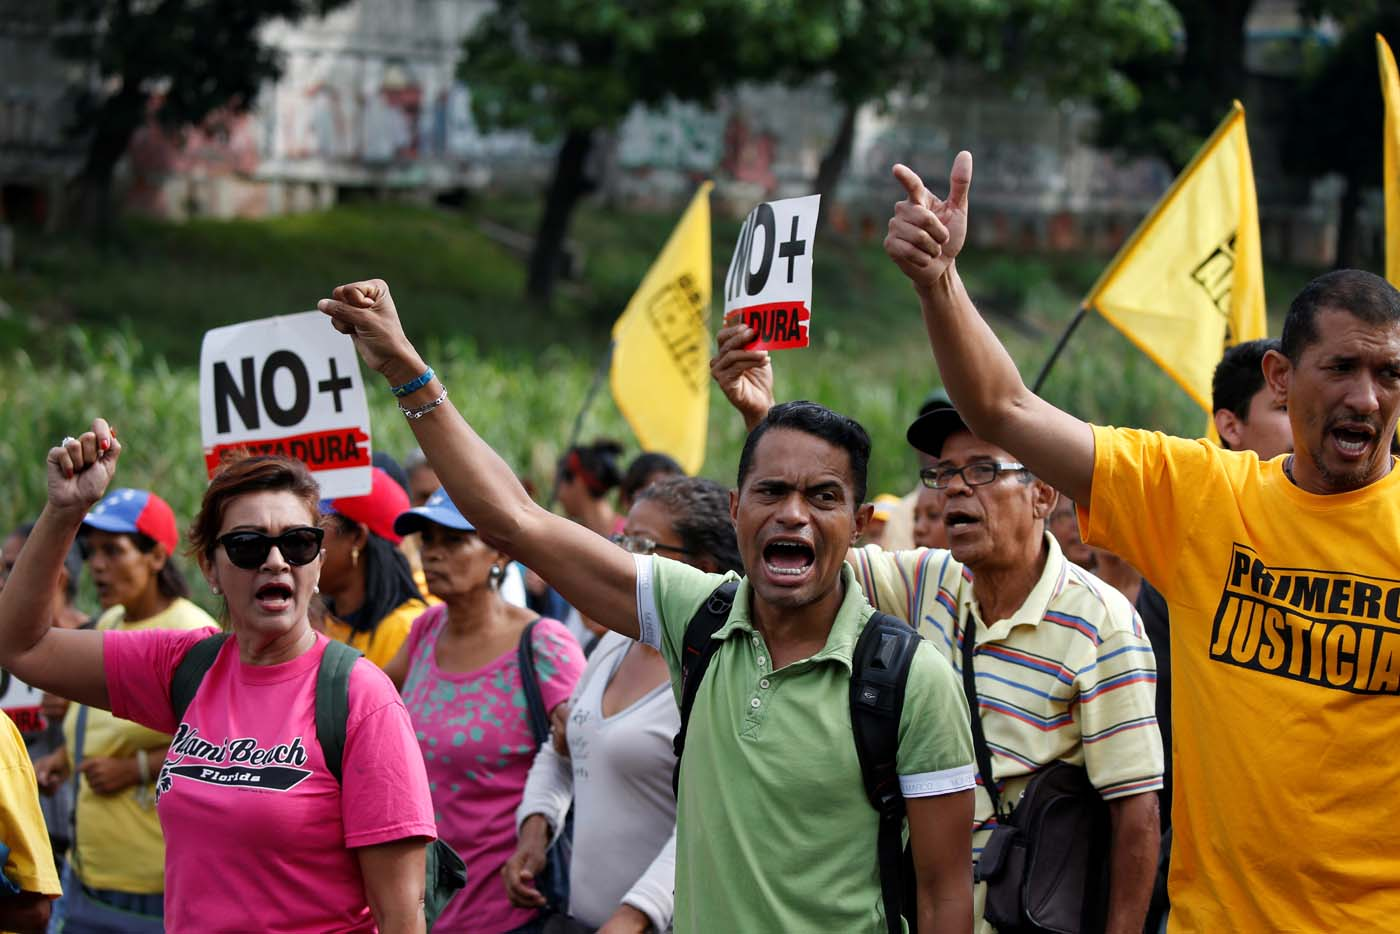 Opposition supporters shout slogans as they block a highway during a protest against Venezuelan President Nicolas Maduro's government in Caracas, Venezuela March 31, 2017. REUTERS/Carlos Garcia Rawlins